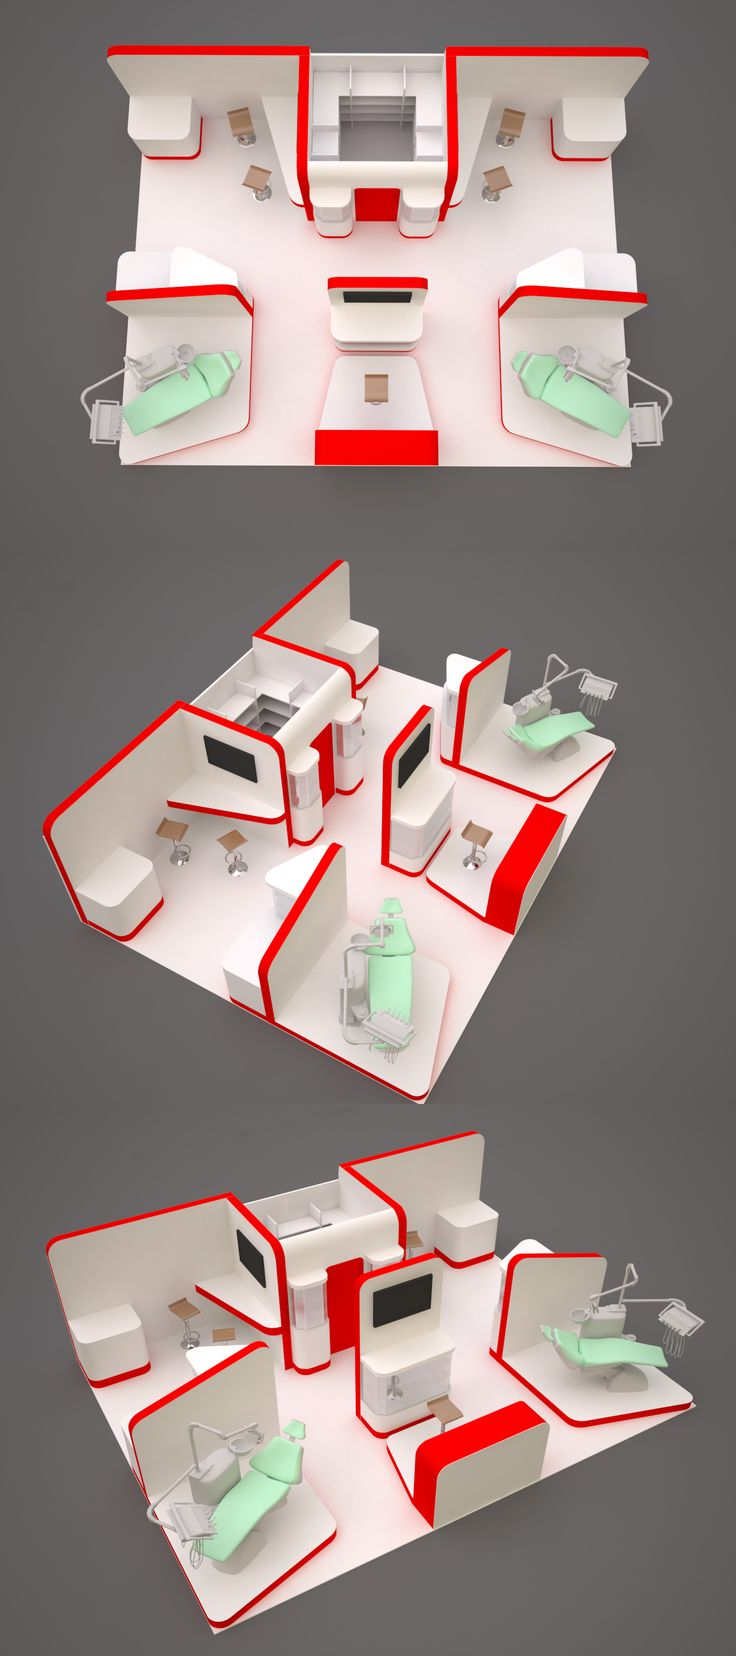 Exhibition stand design for a dental company